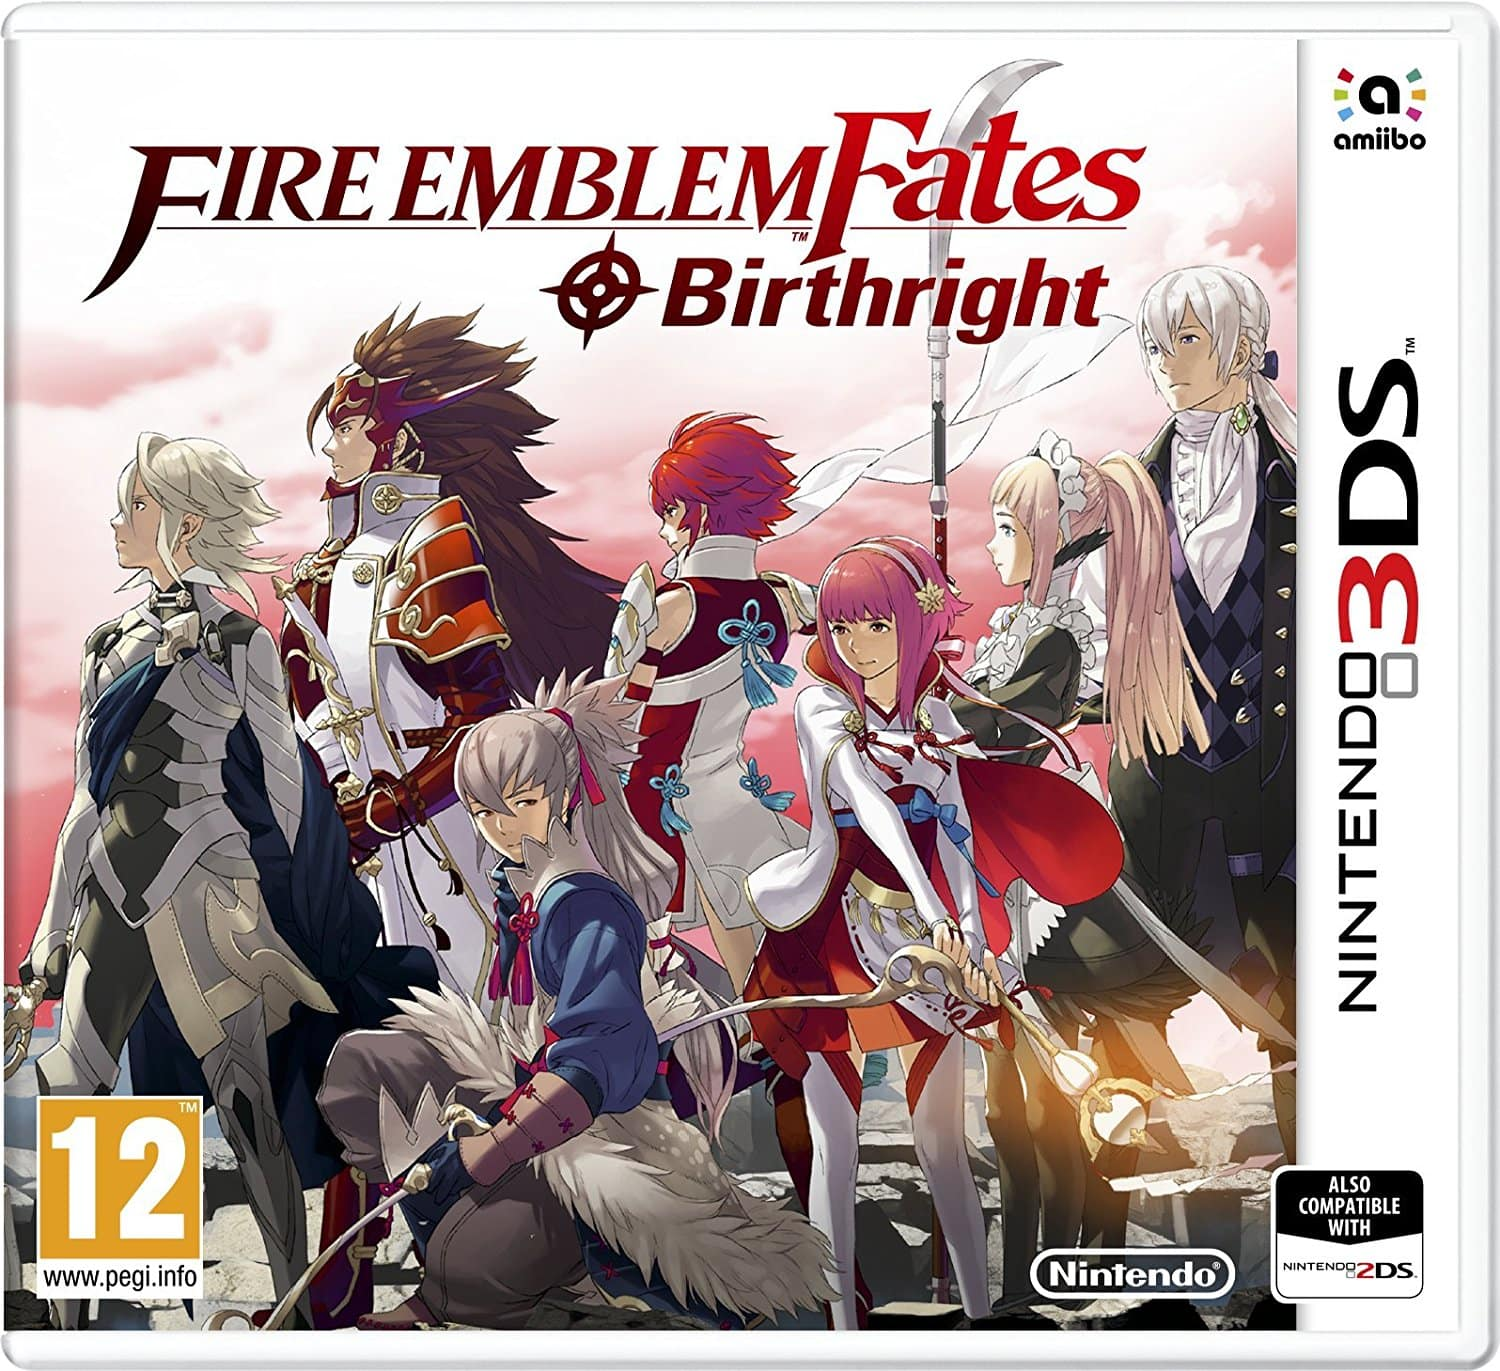 Fire Emblem (Multiple Titles) 3DS Clearance - $20 YMMV B&M Walmart